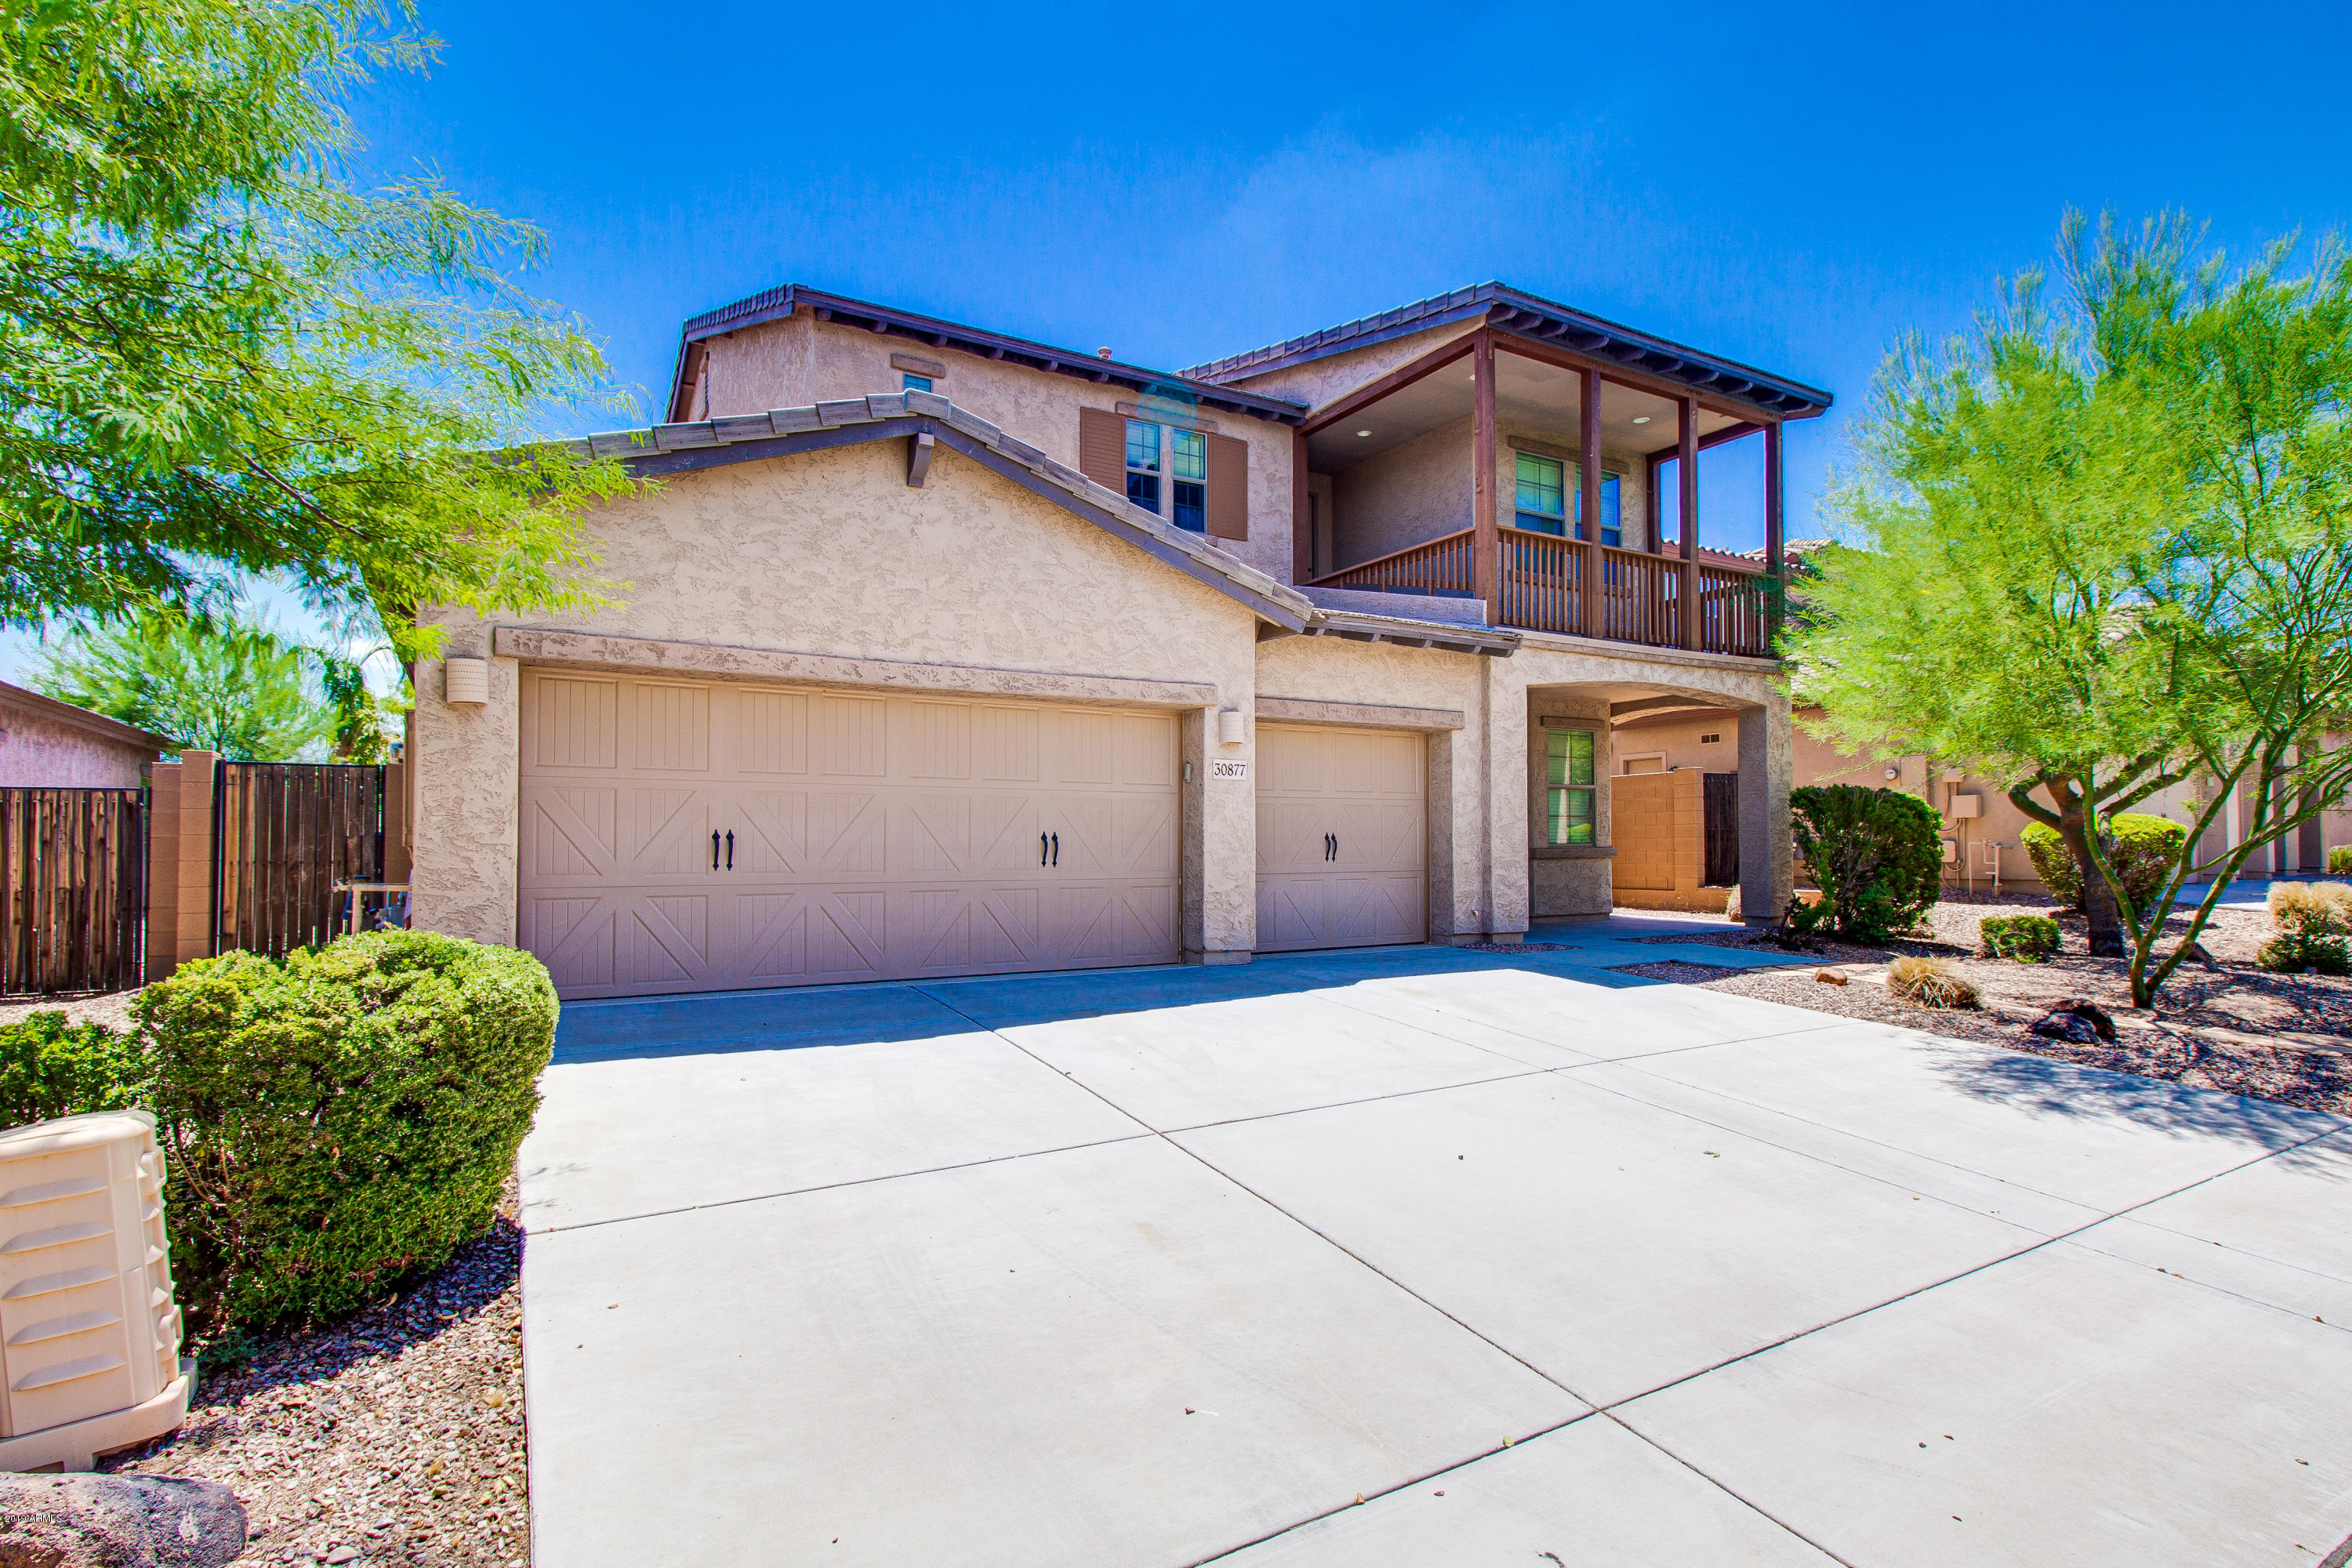 30877 N 126th Avenue, Peoria, Arizona